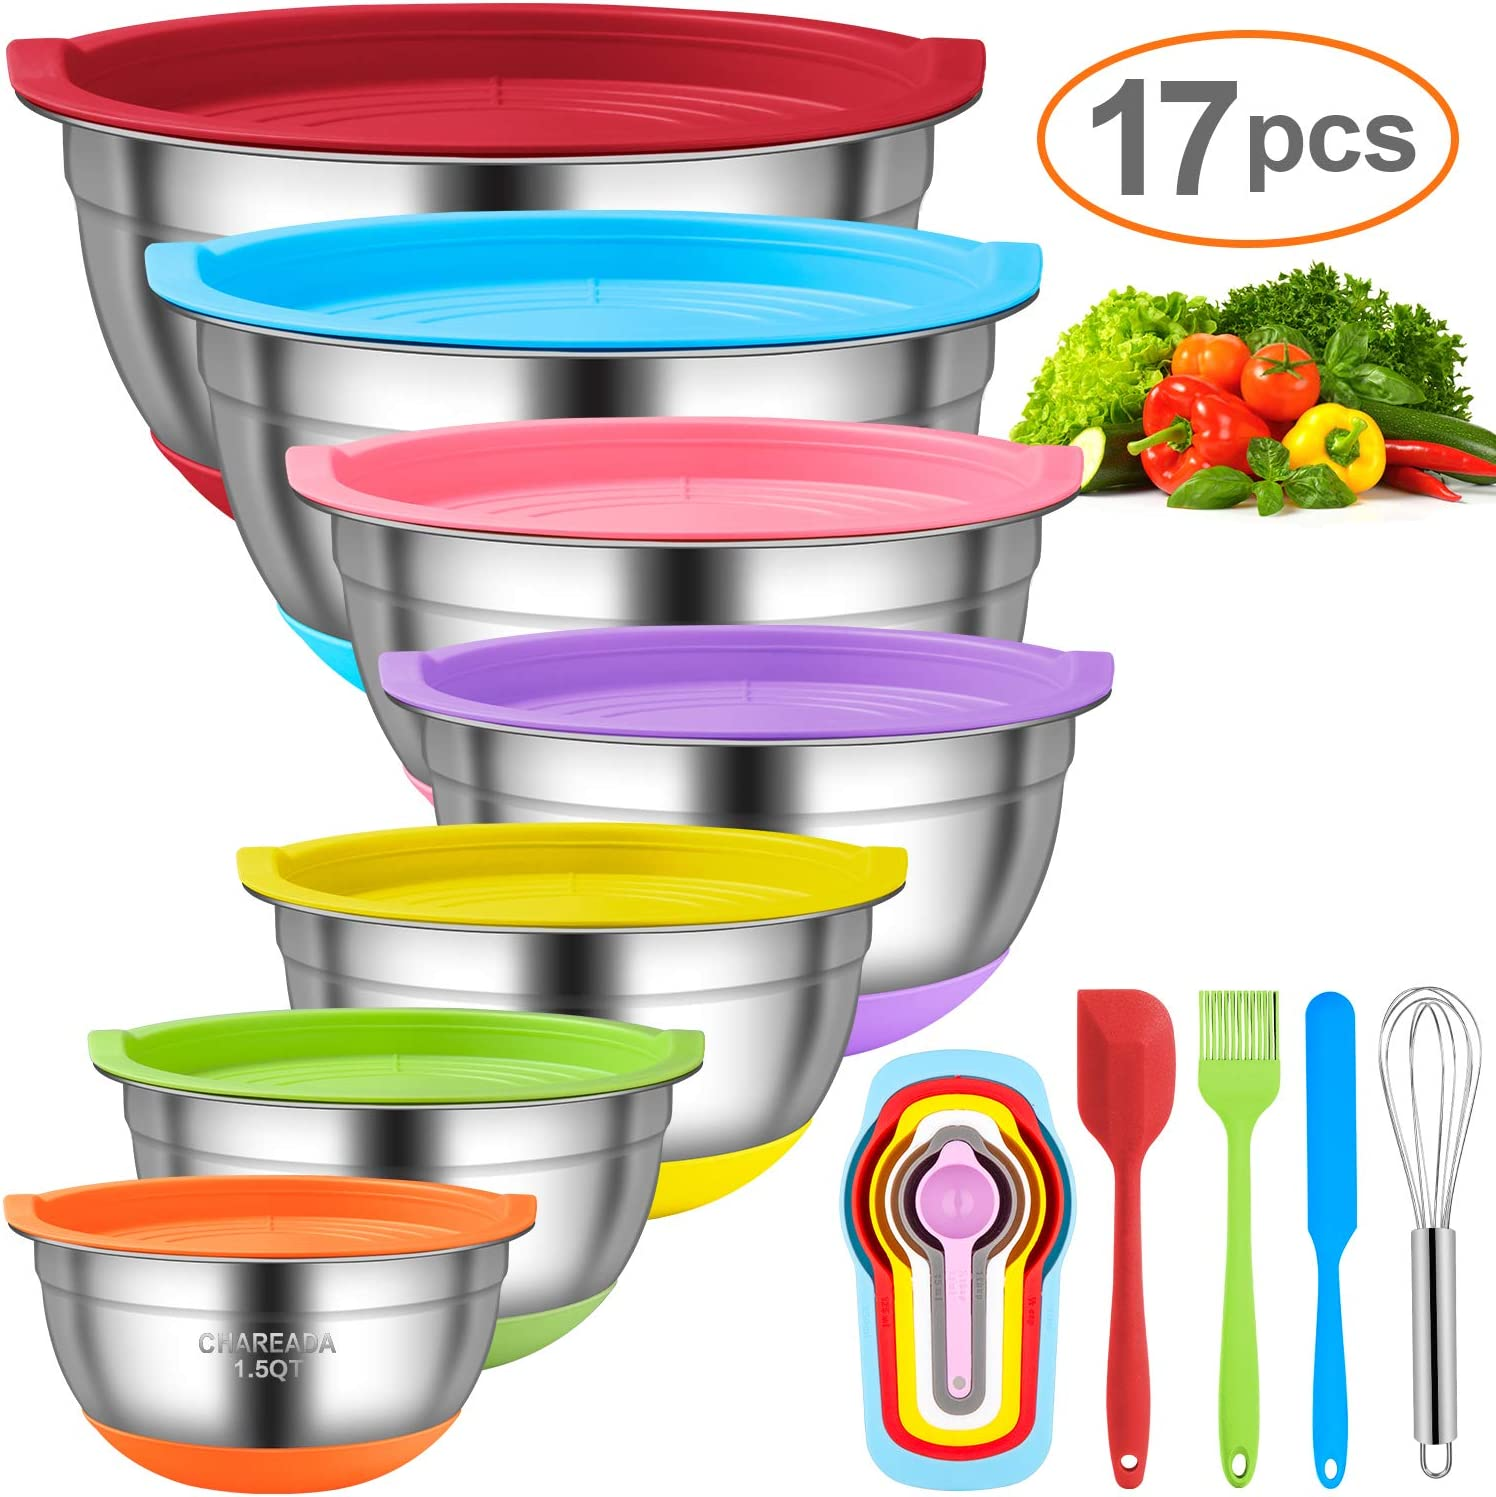 Mixing Bowls with Airtight Lids, CHAREADA 17pcs Stainless Steel Nesting Mixing Bowls Set – Non-slip Silicone Bottom, Size 7, 5.5, 4, 3.5, 2.5, 2, 1.5 QT, Fit for Mixing & Serving